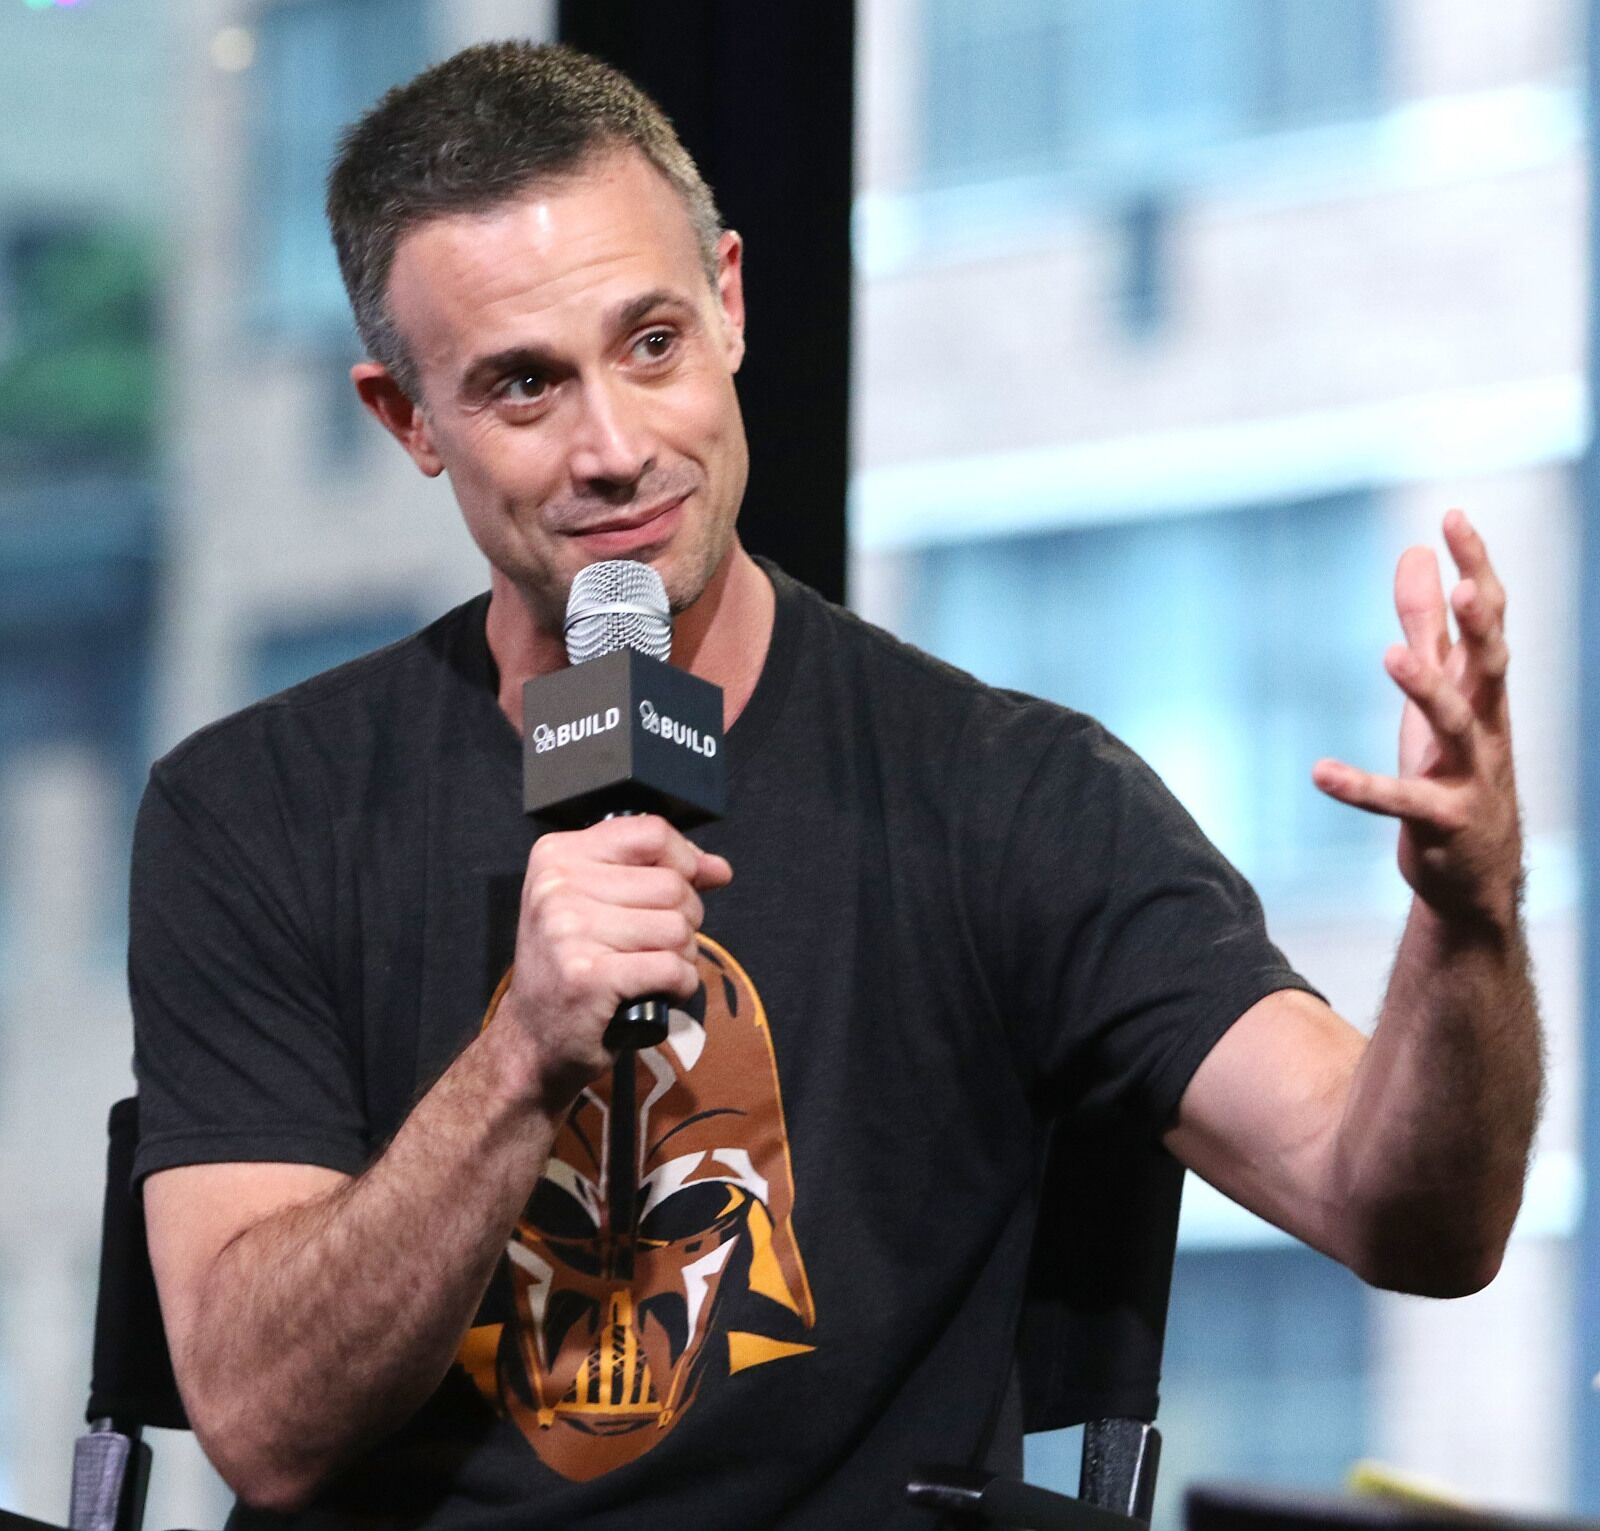 Freddie Prinze Jr. drops some major hints about The Rise of Skywalker in an epic rant